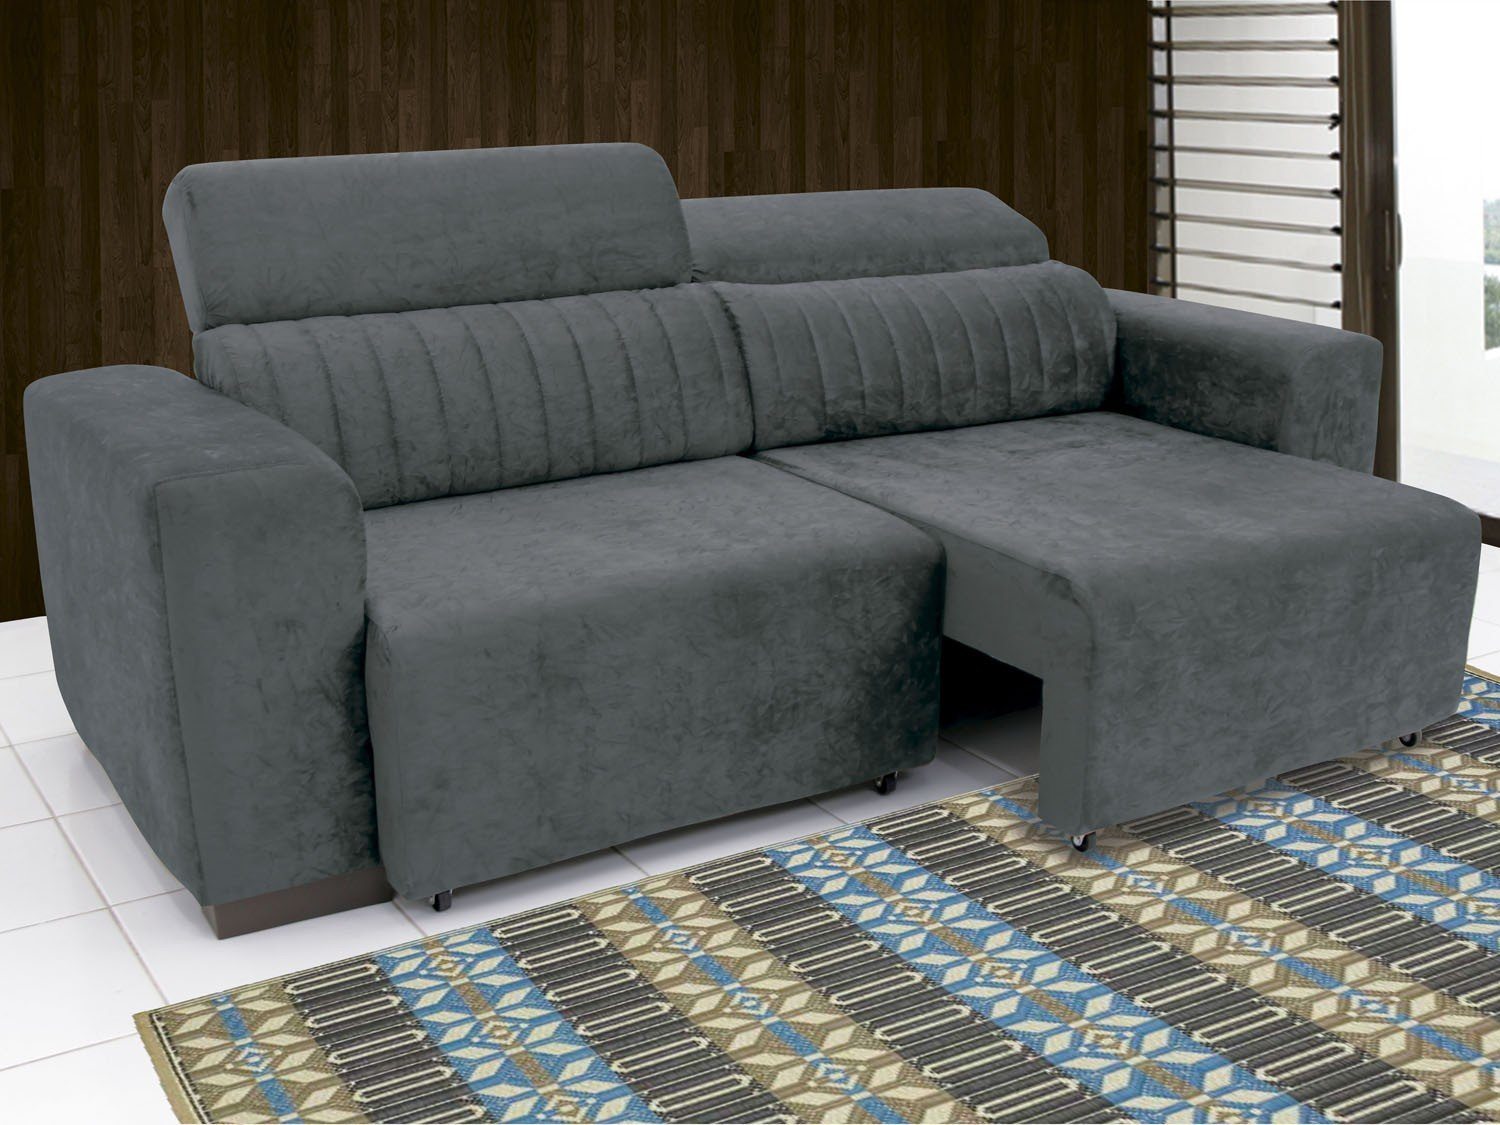 Sof retr til e reclin vel 4 lugares elite linoforte for Sofa 03 lugares retratil e reclinavel